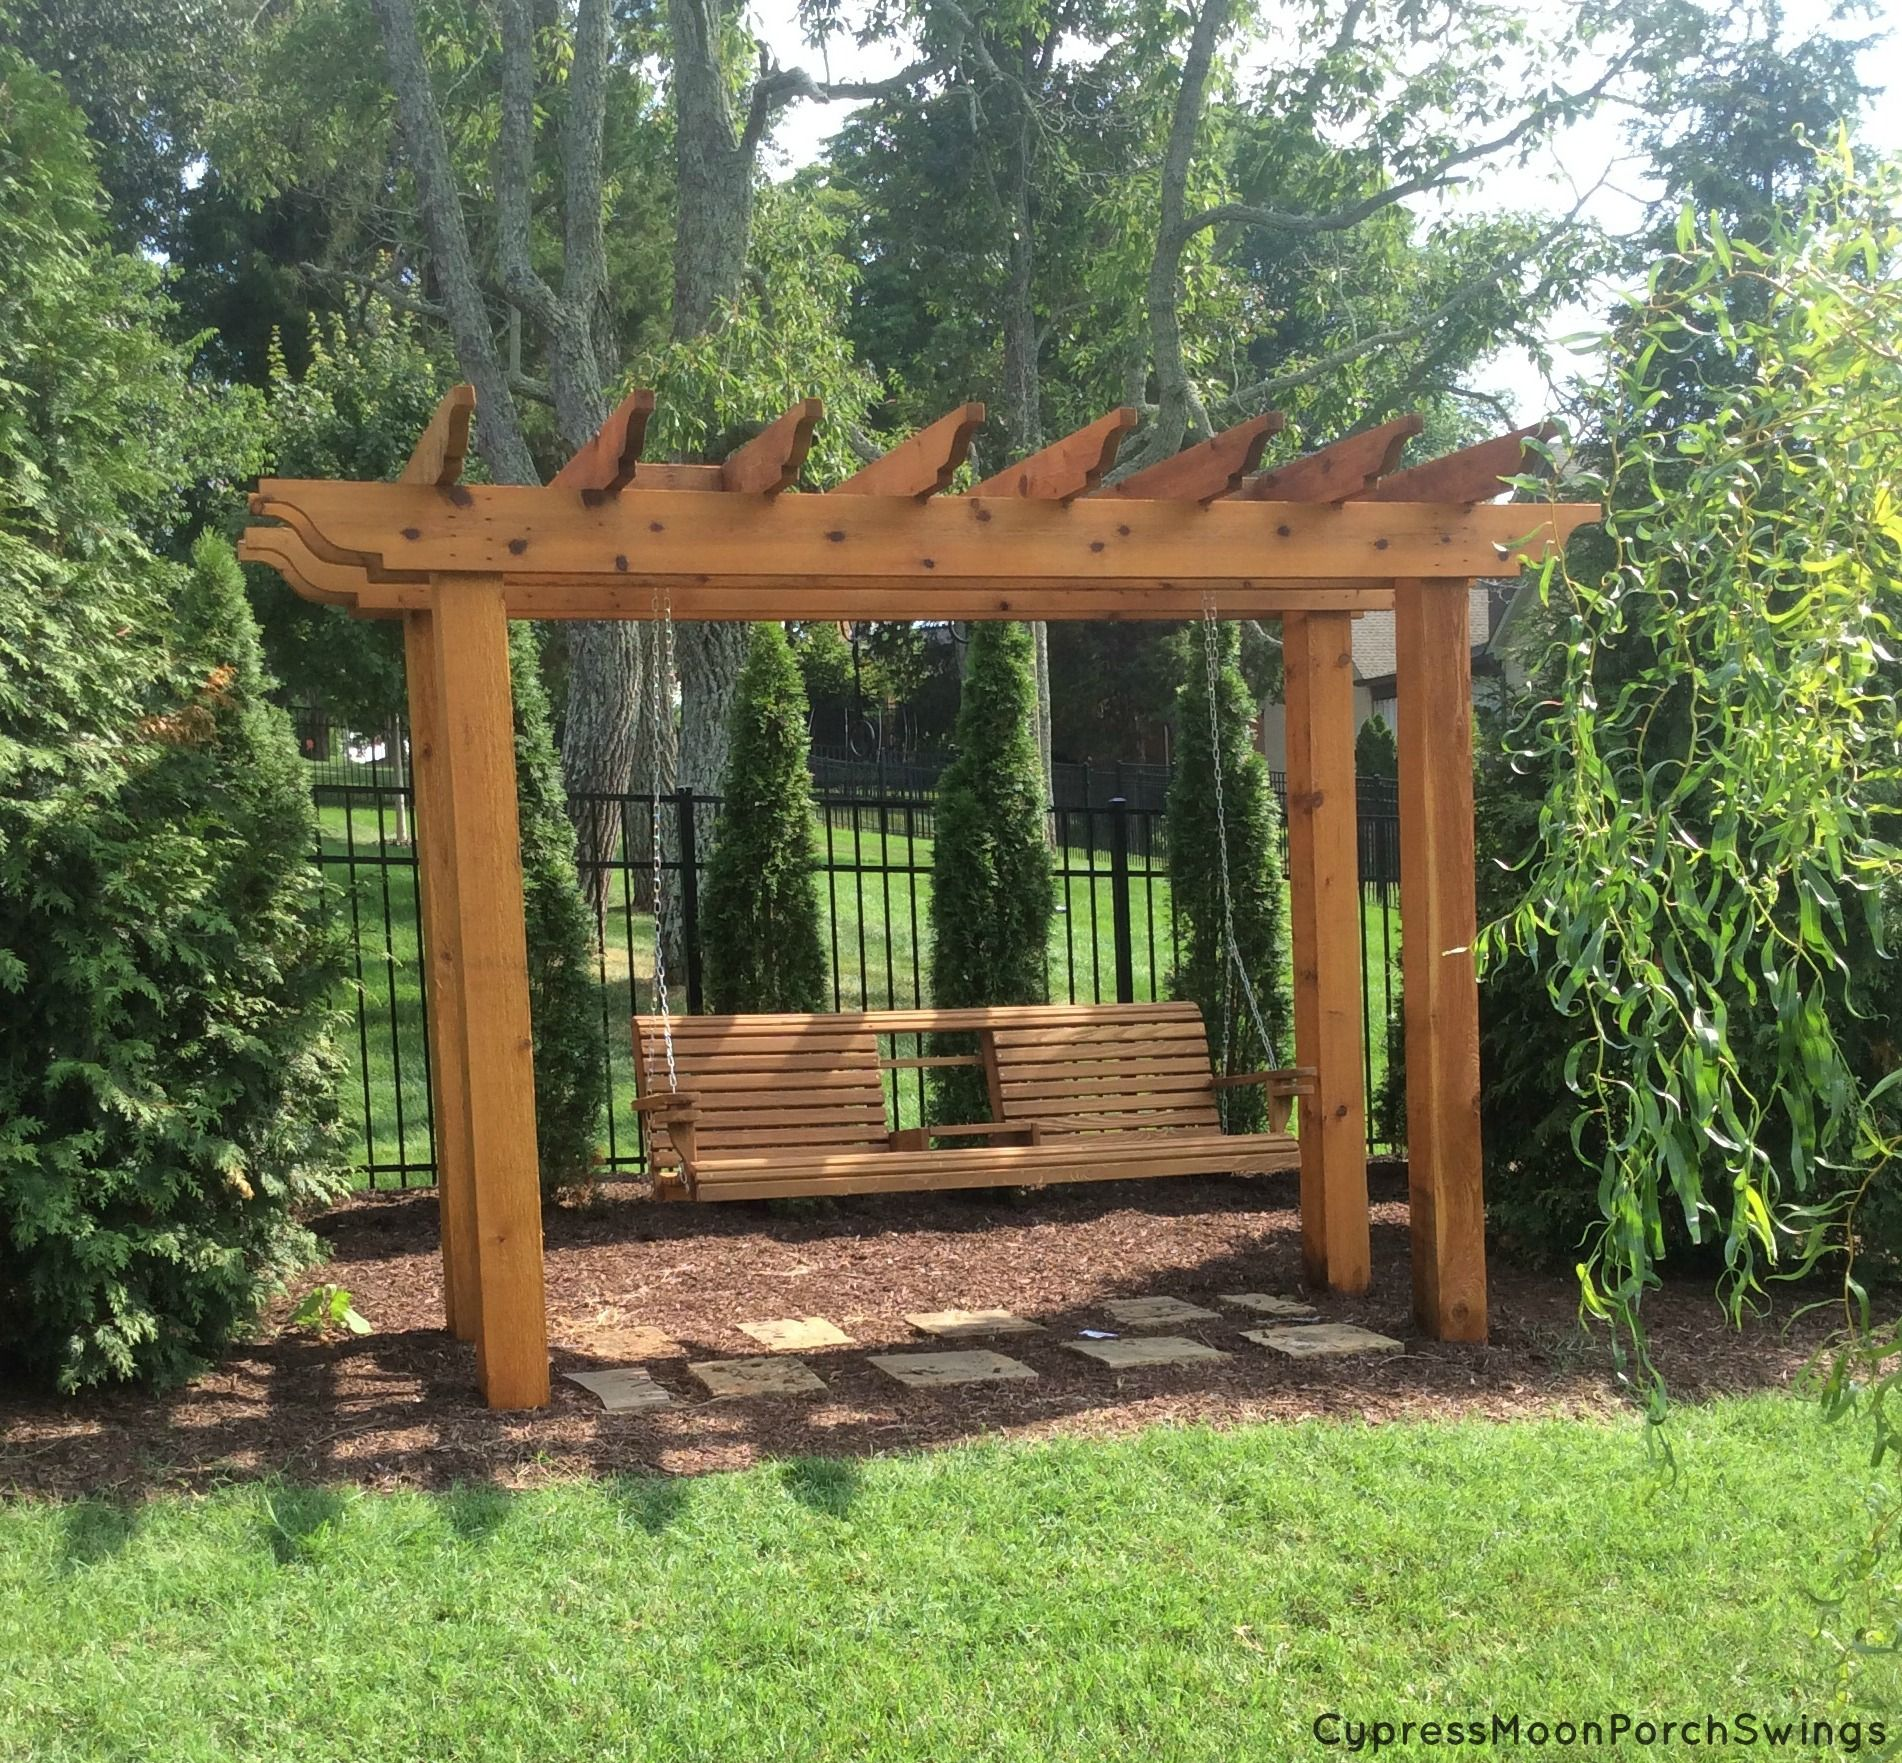 Exceptional An Awesome Porch Swing Gazebo Featuring The Cypress Moon Console Swing.  This Beautiful Photo Is